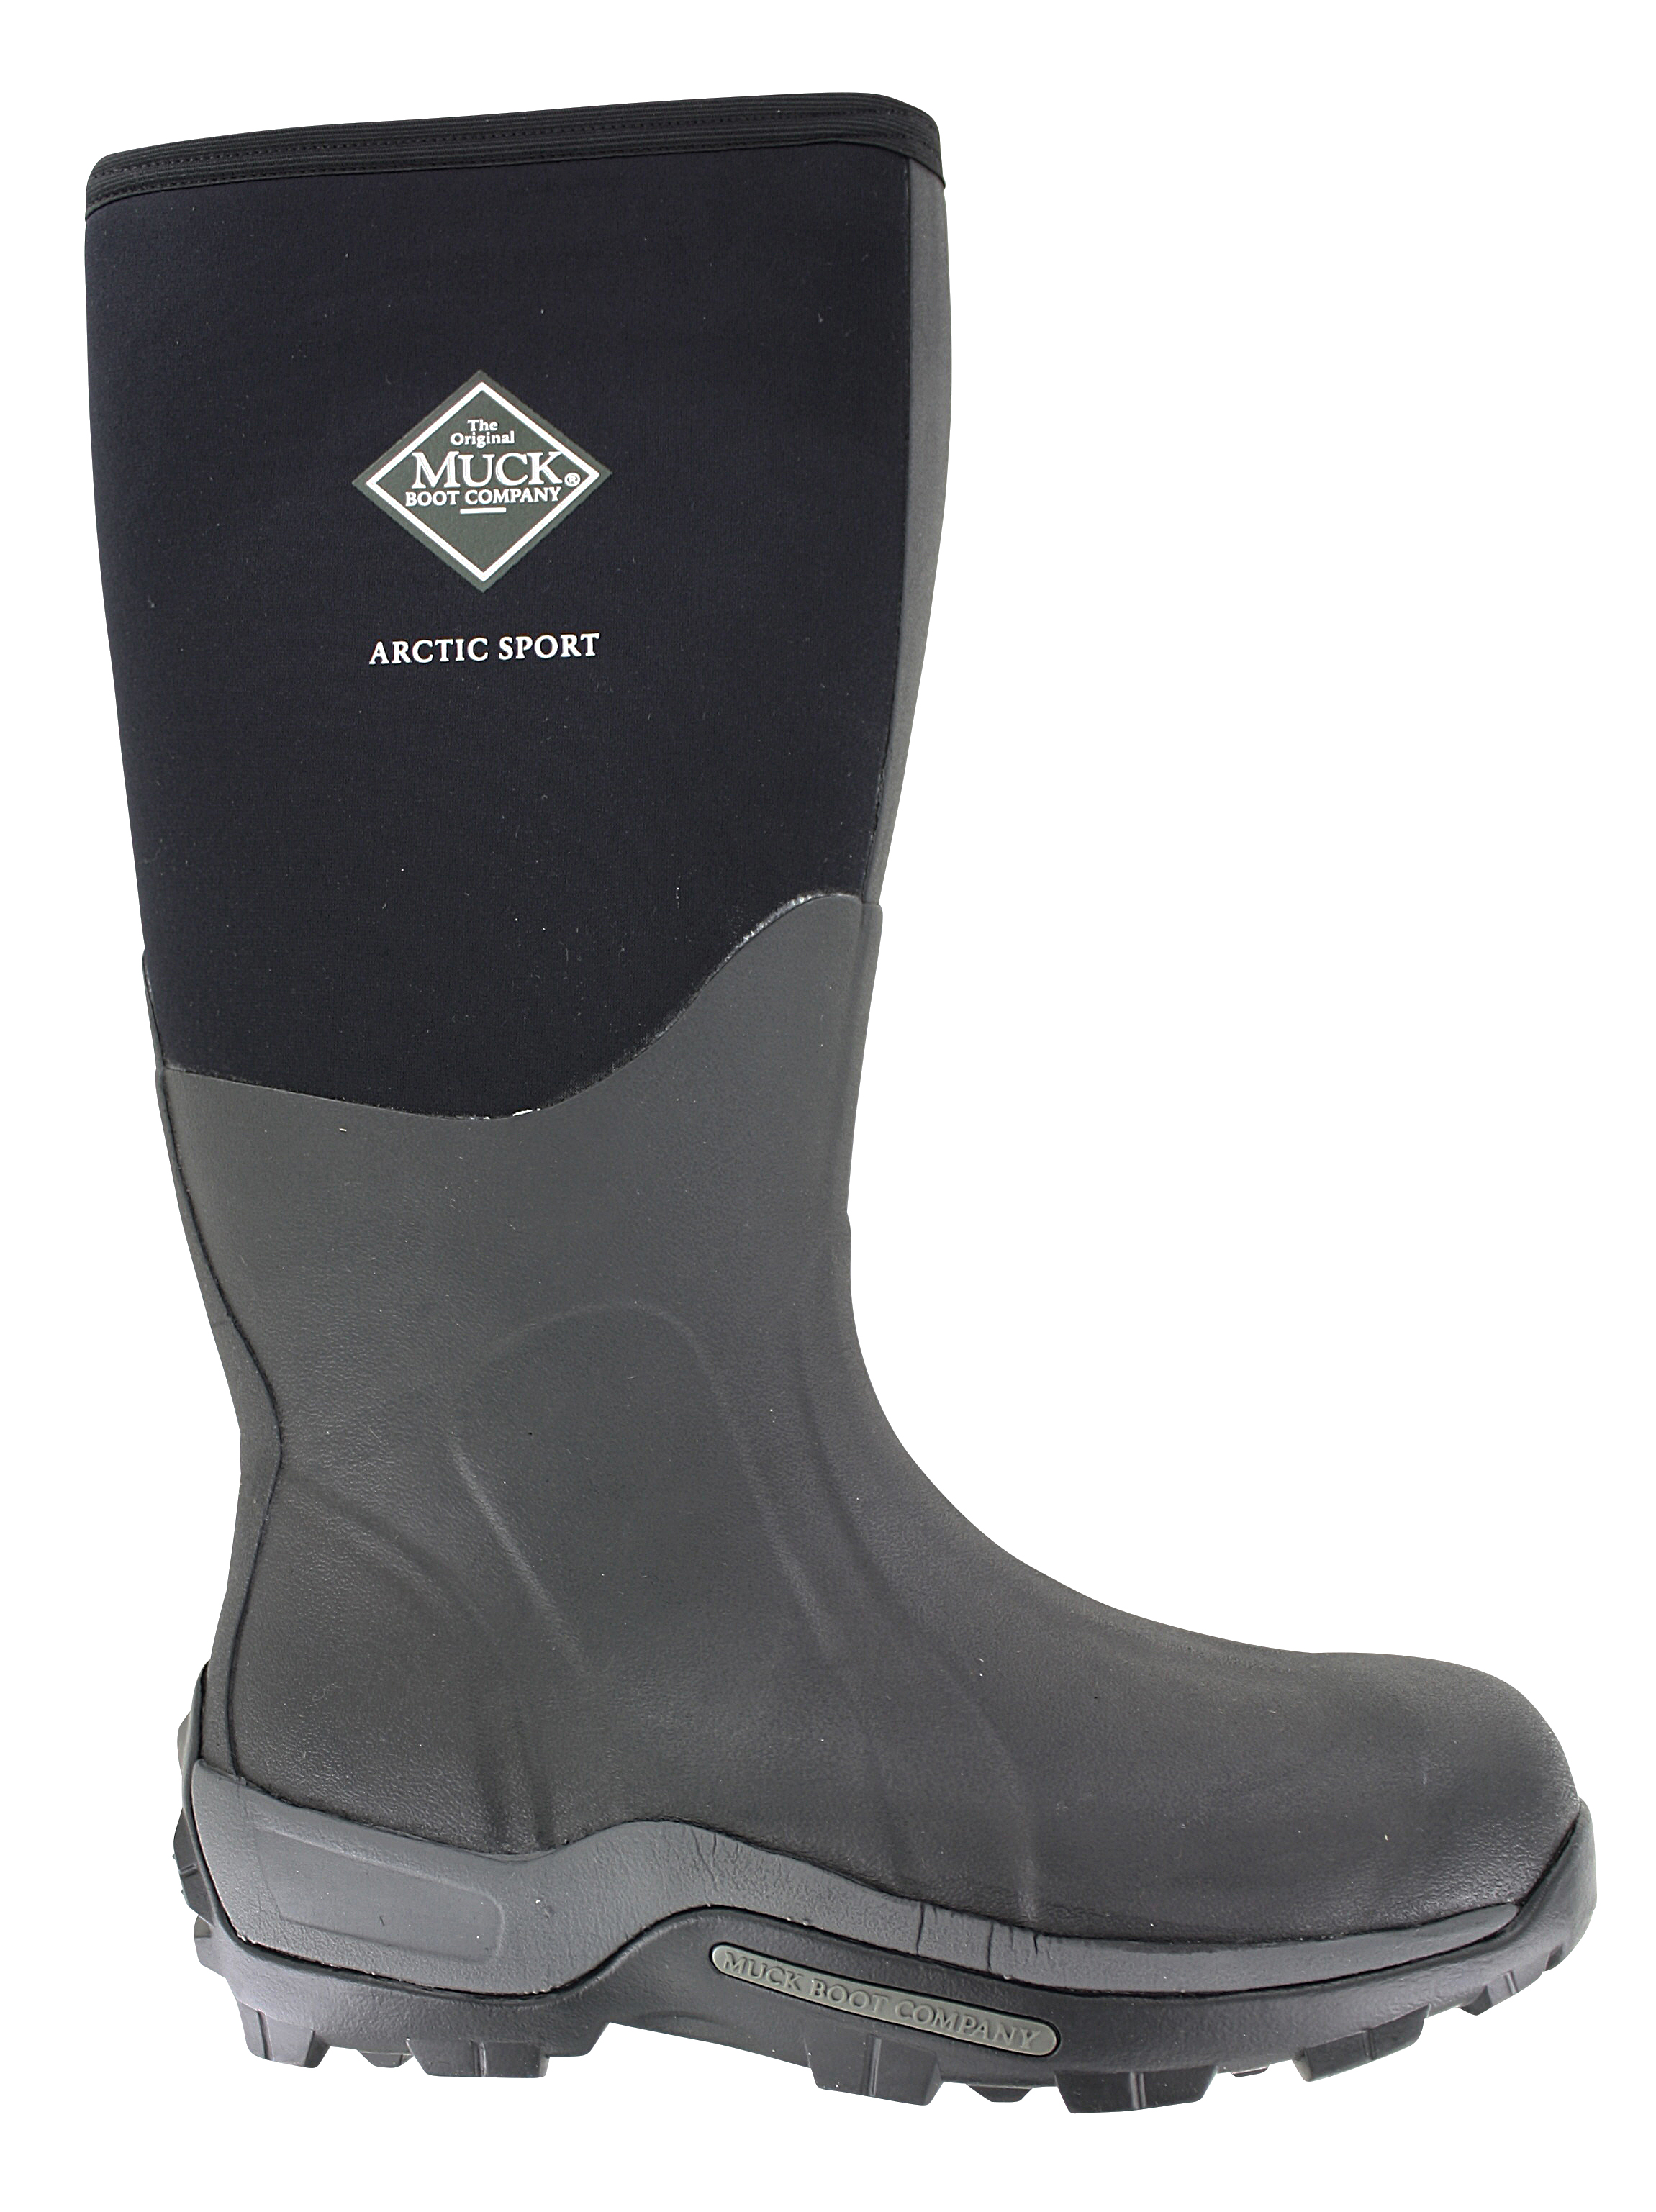 Mens Muck Artic Sport Hi Waterproof Boot Black